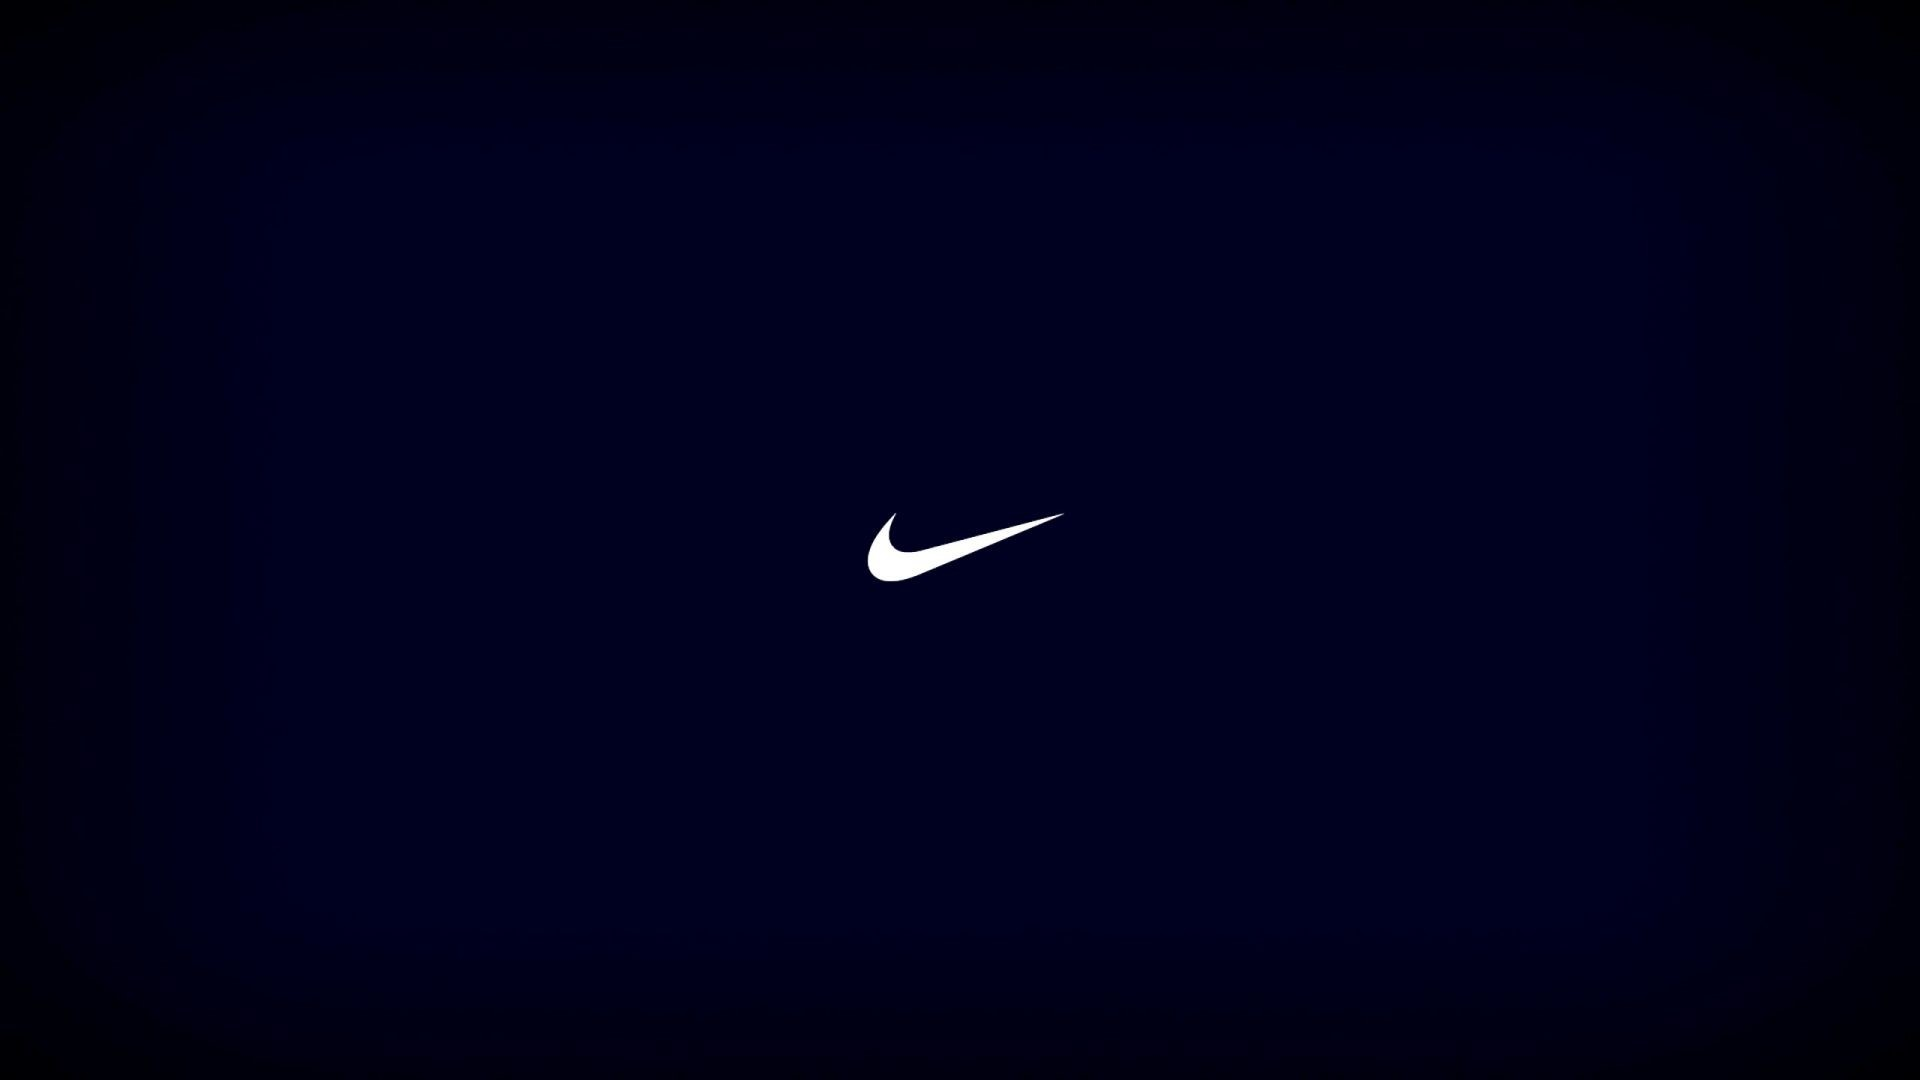 1920x1080 Nike Tick Wallpaper